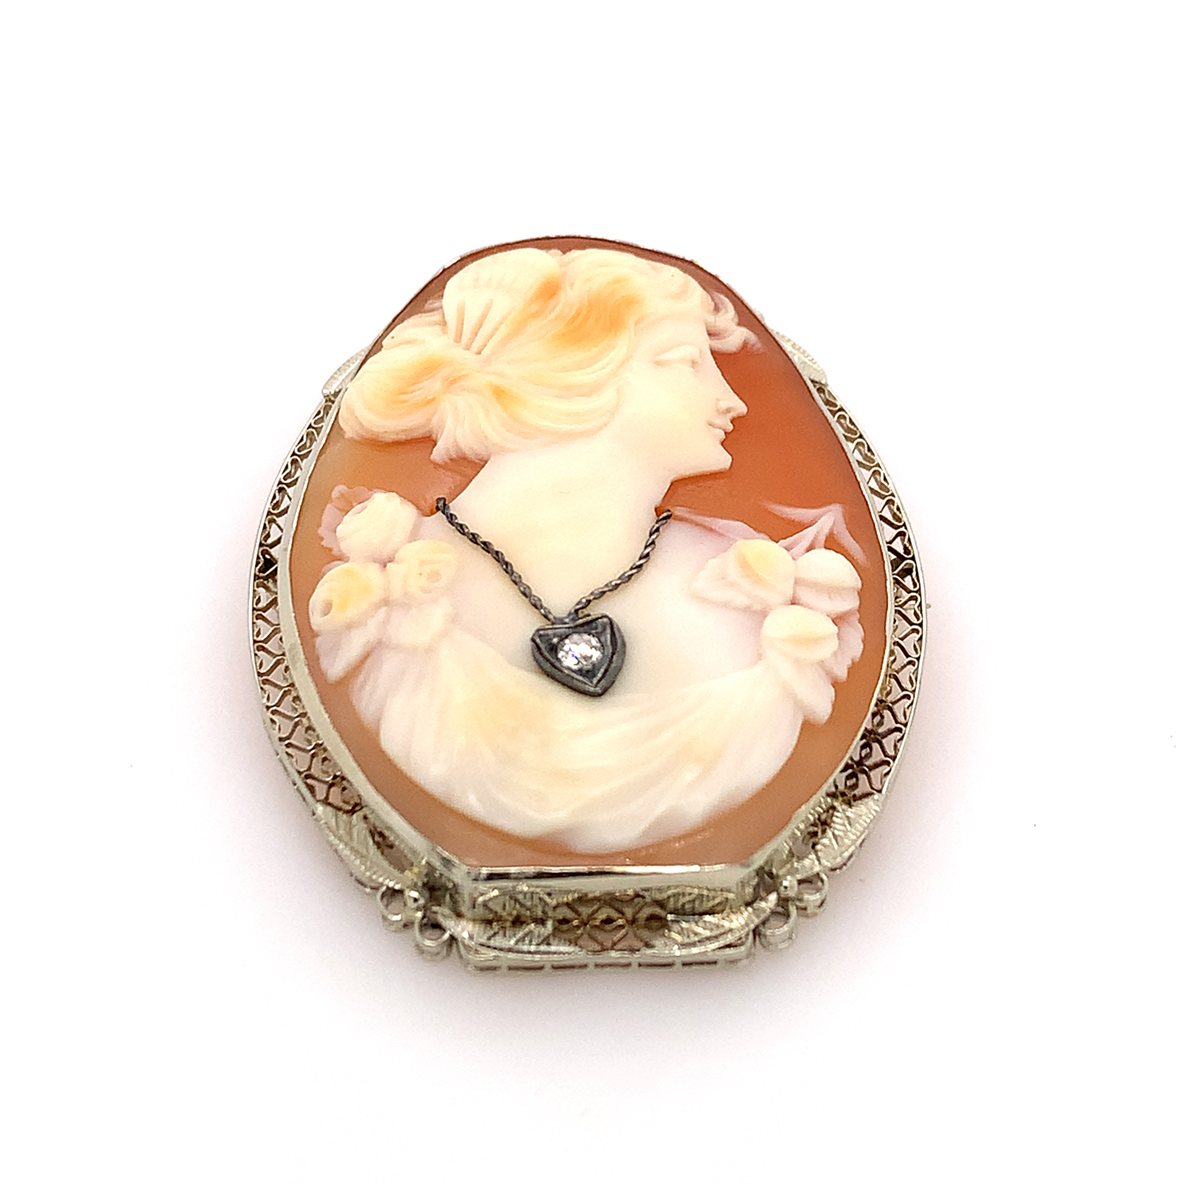 Vintage 14 Karat Yellow Gold Carved Cameo Pin and Pendant